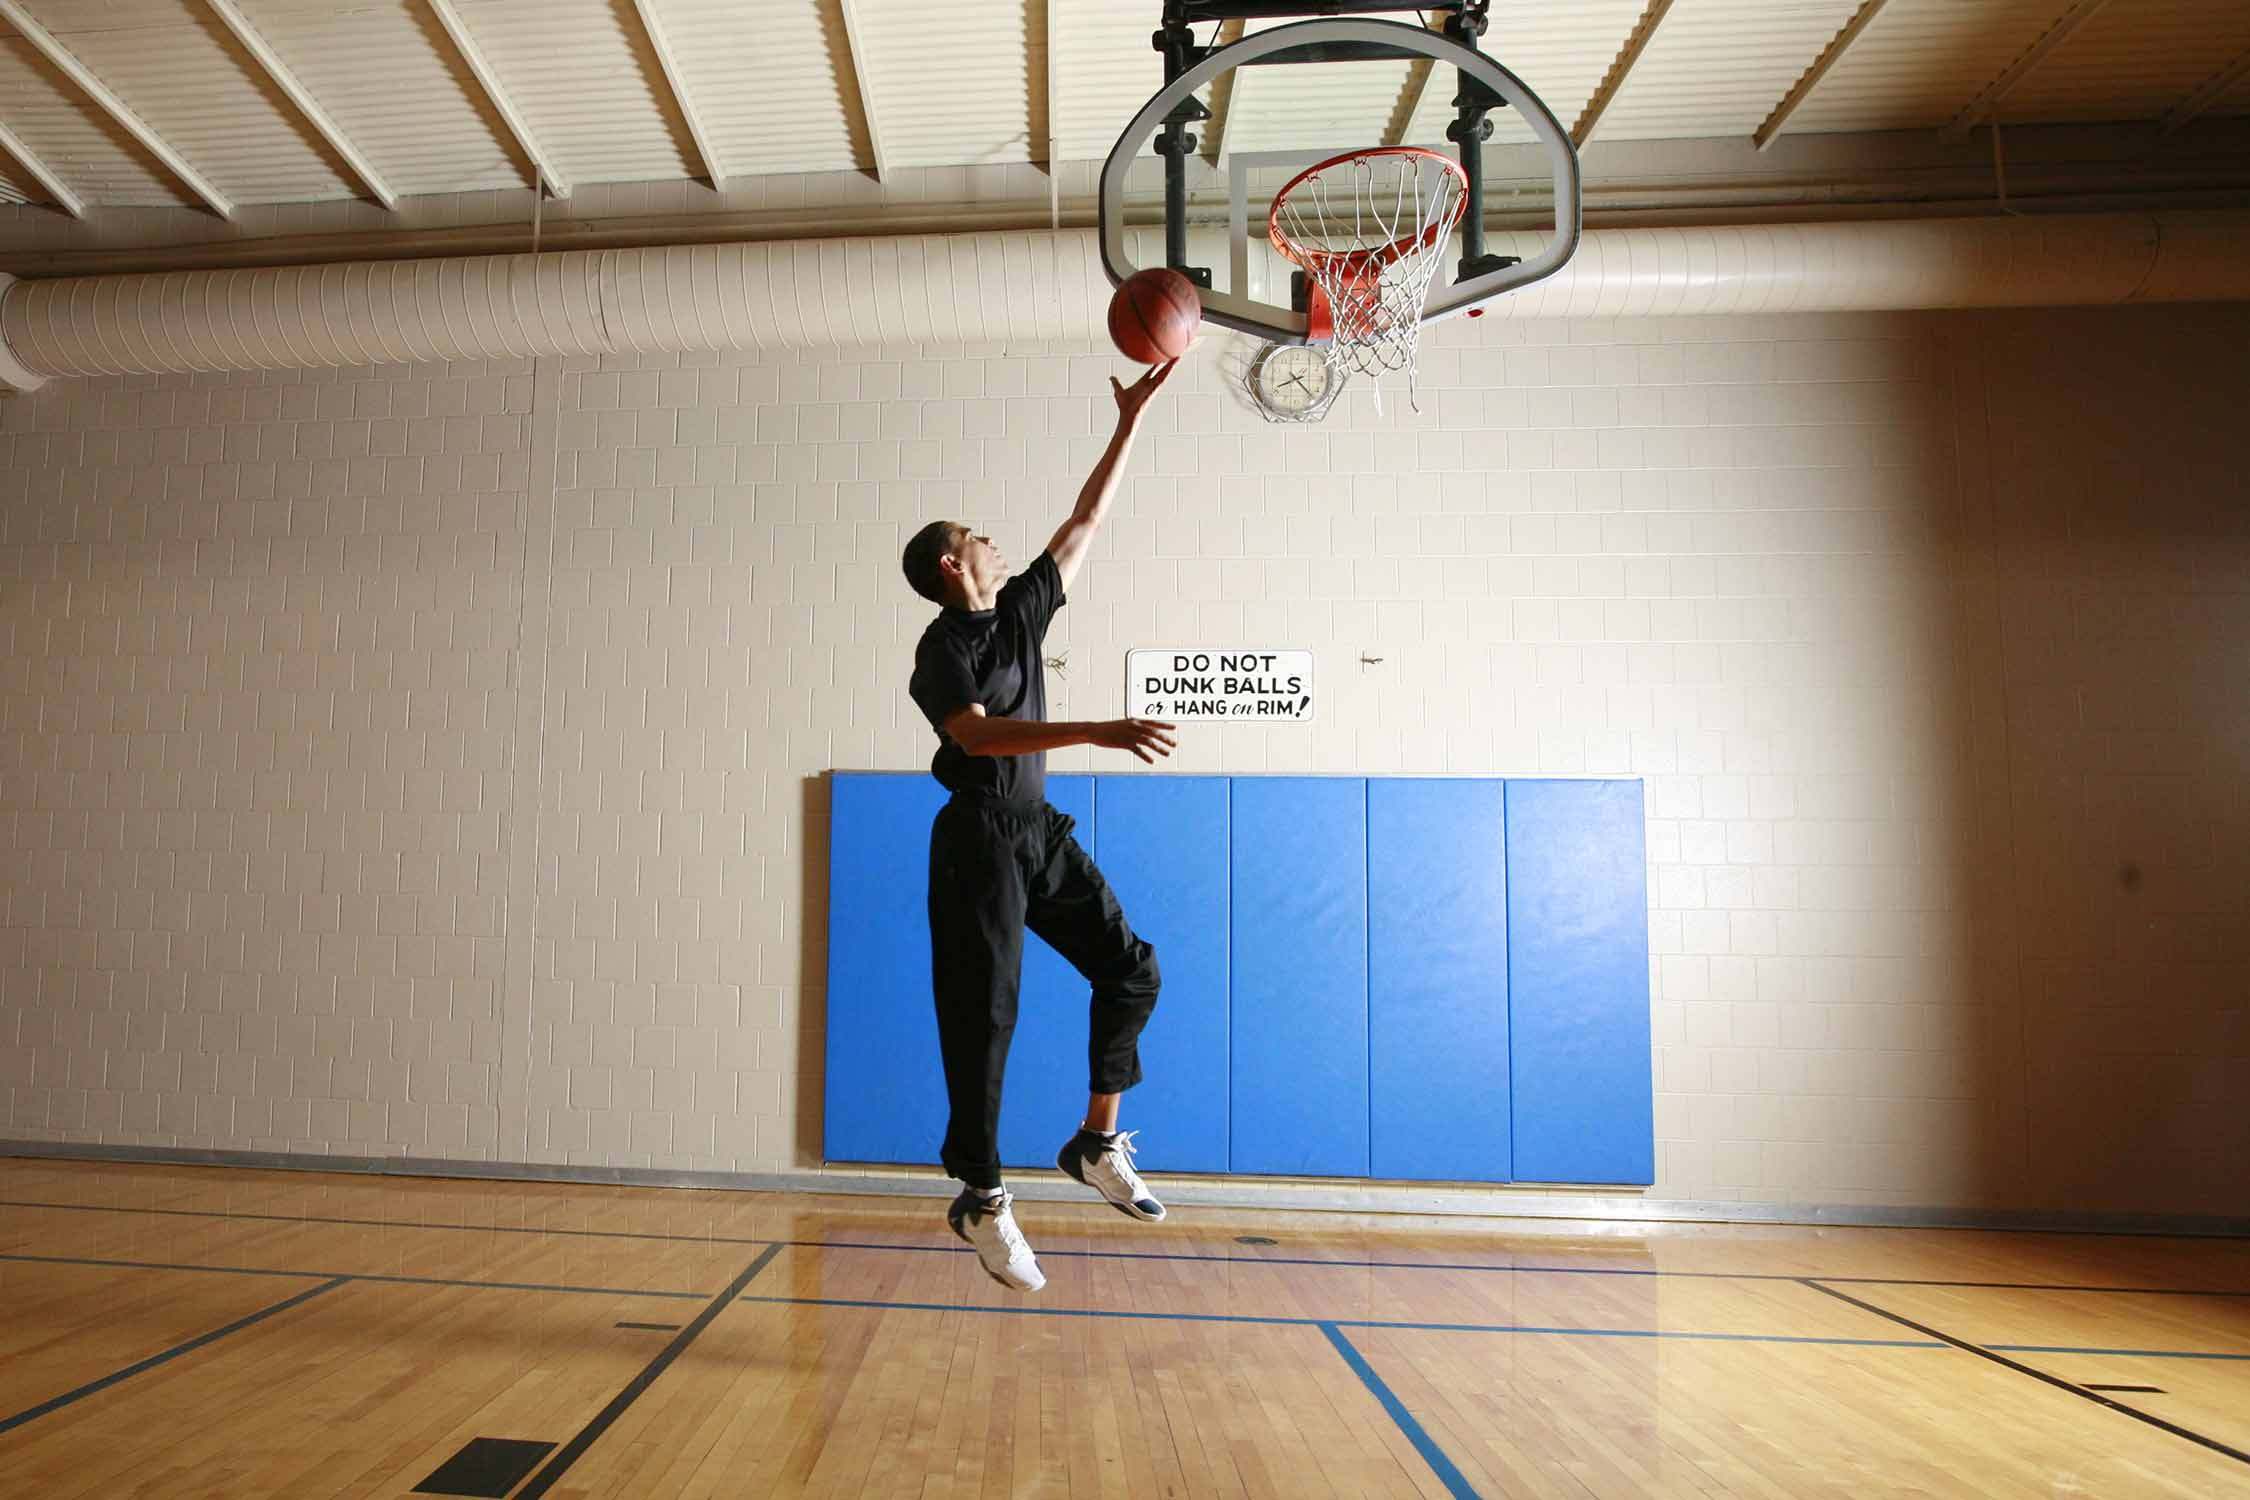 Following the court's rules, Barack Obama lays in a left-handed layup rather than throwing down a slam in 2007.